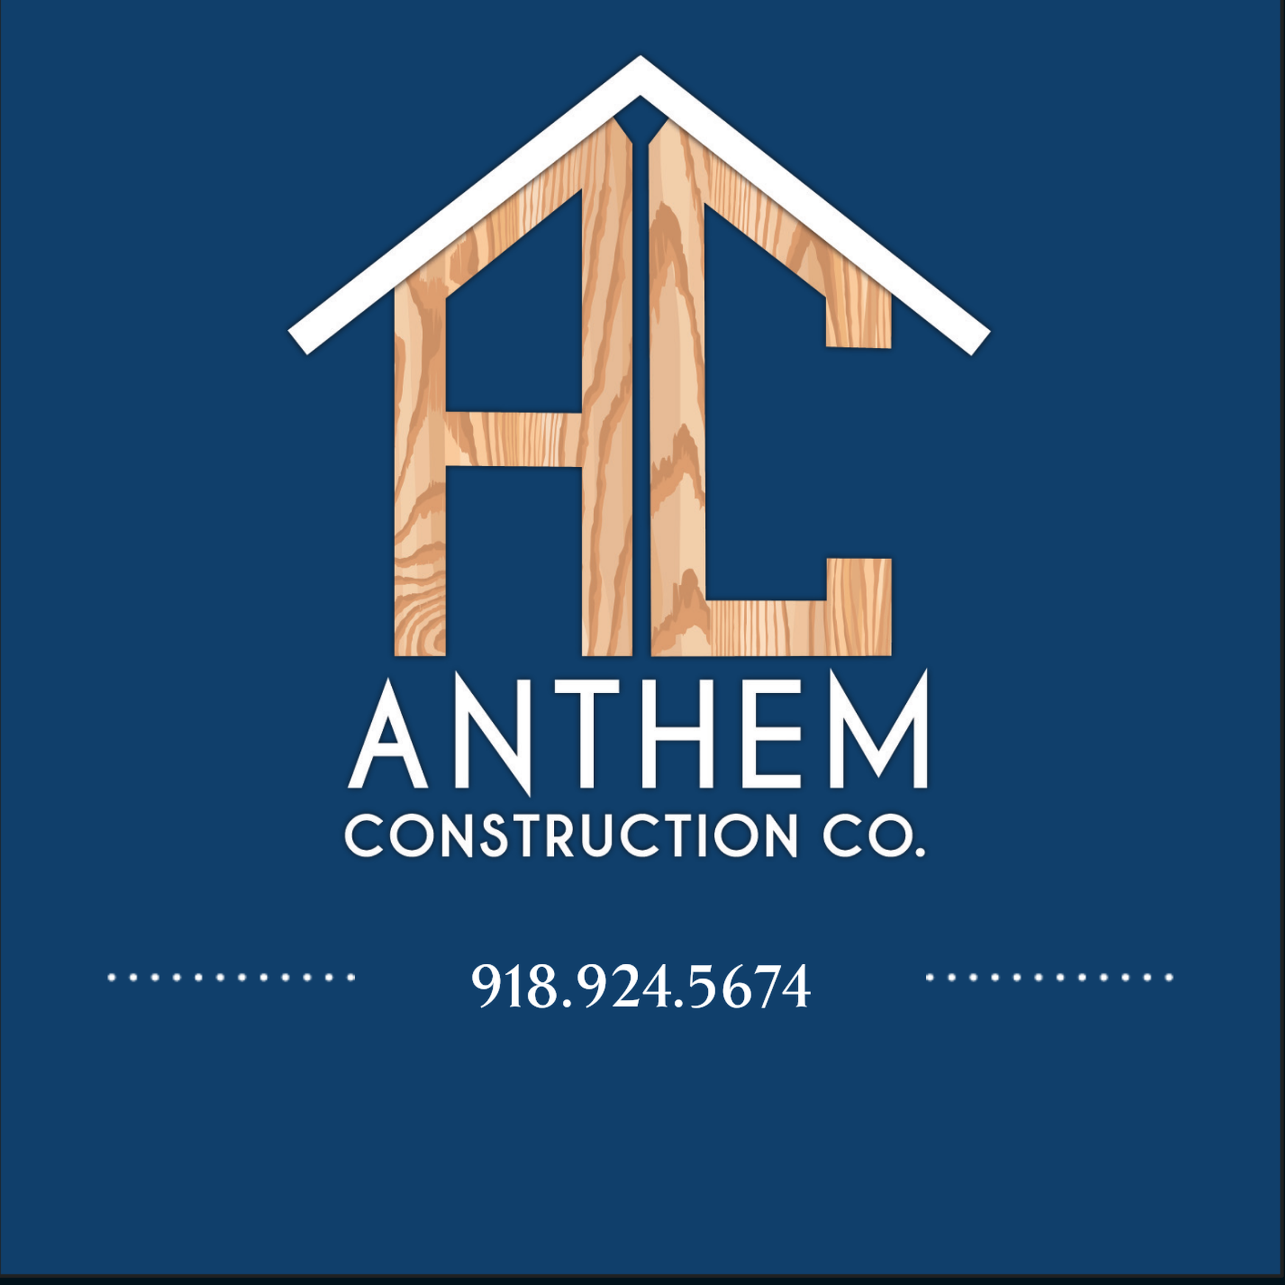 Anthem Construction Co.